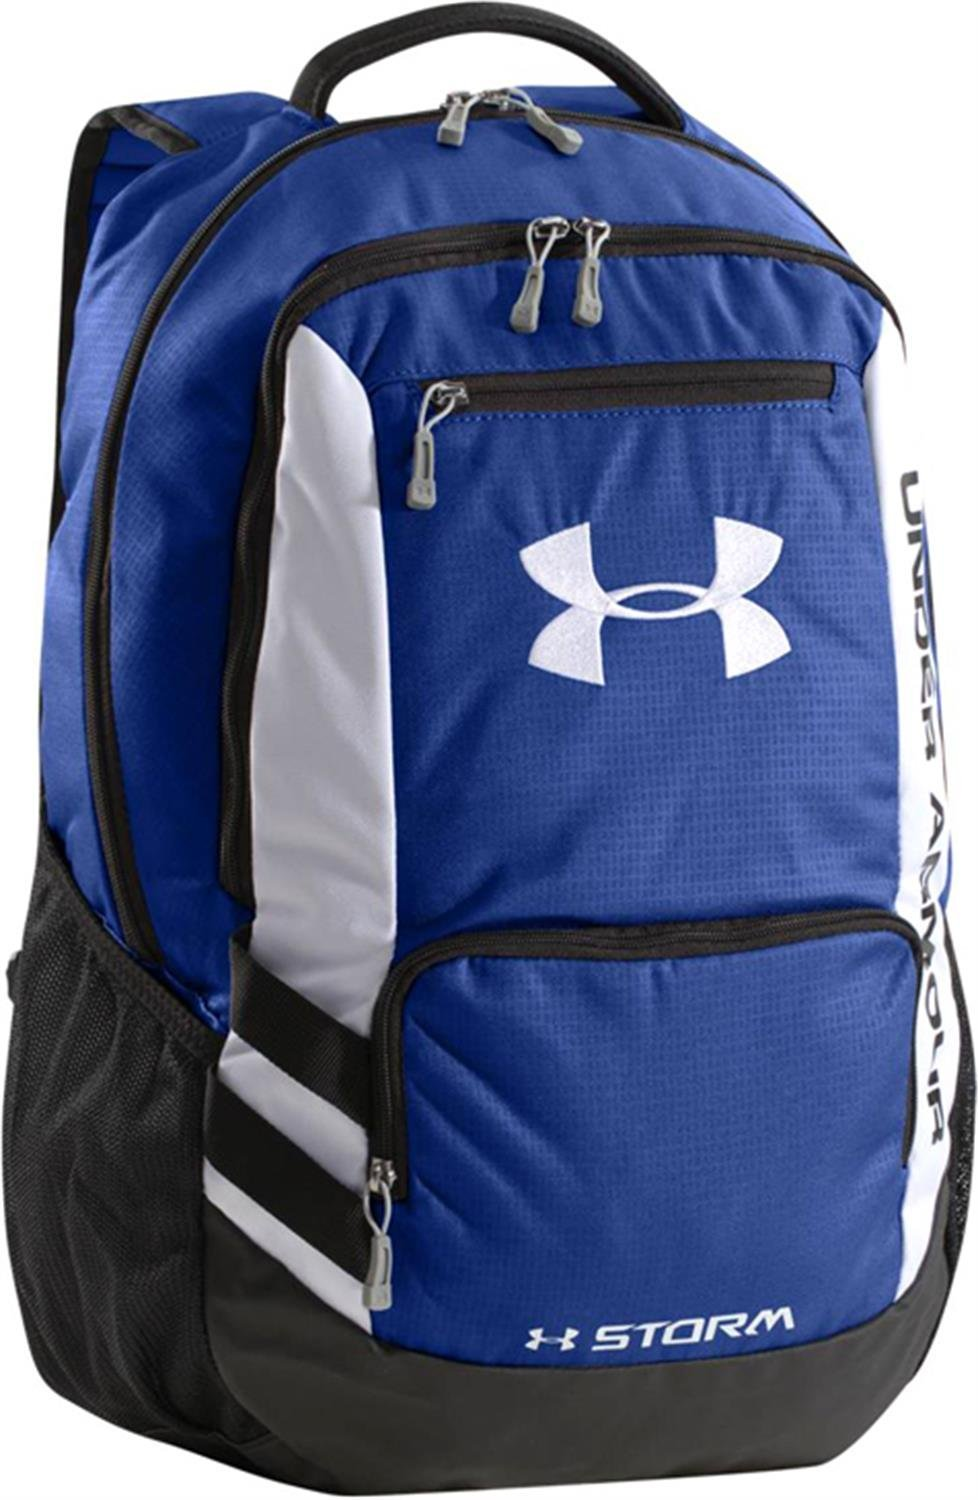 33d4c12d33cc Get Quotations · Under Armour 2015 UA Hustle Storm Backpack (Blue)